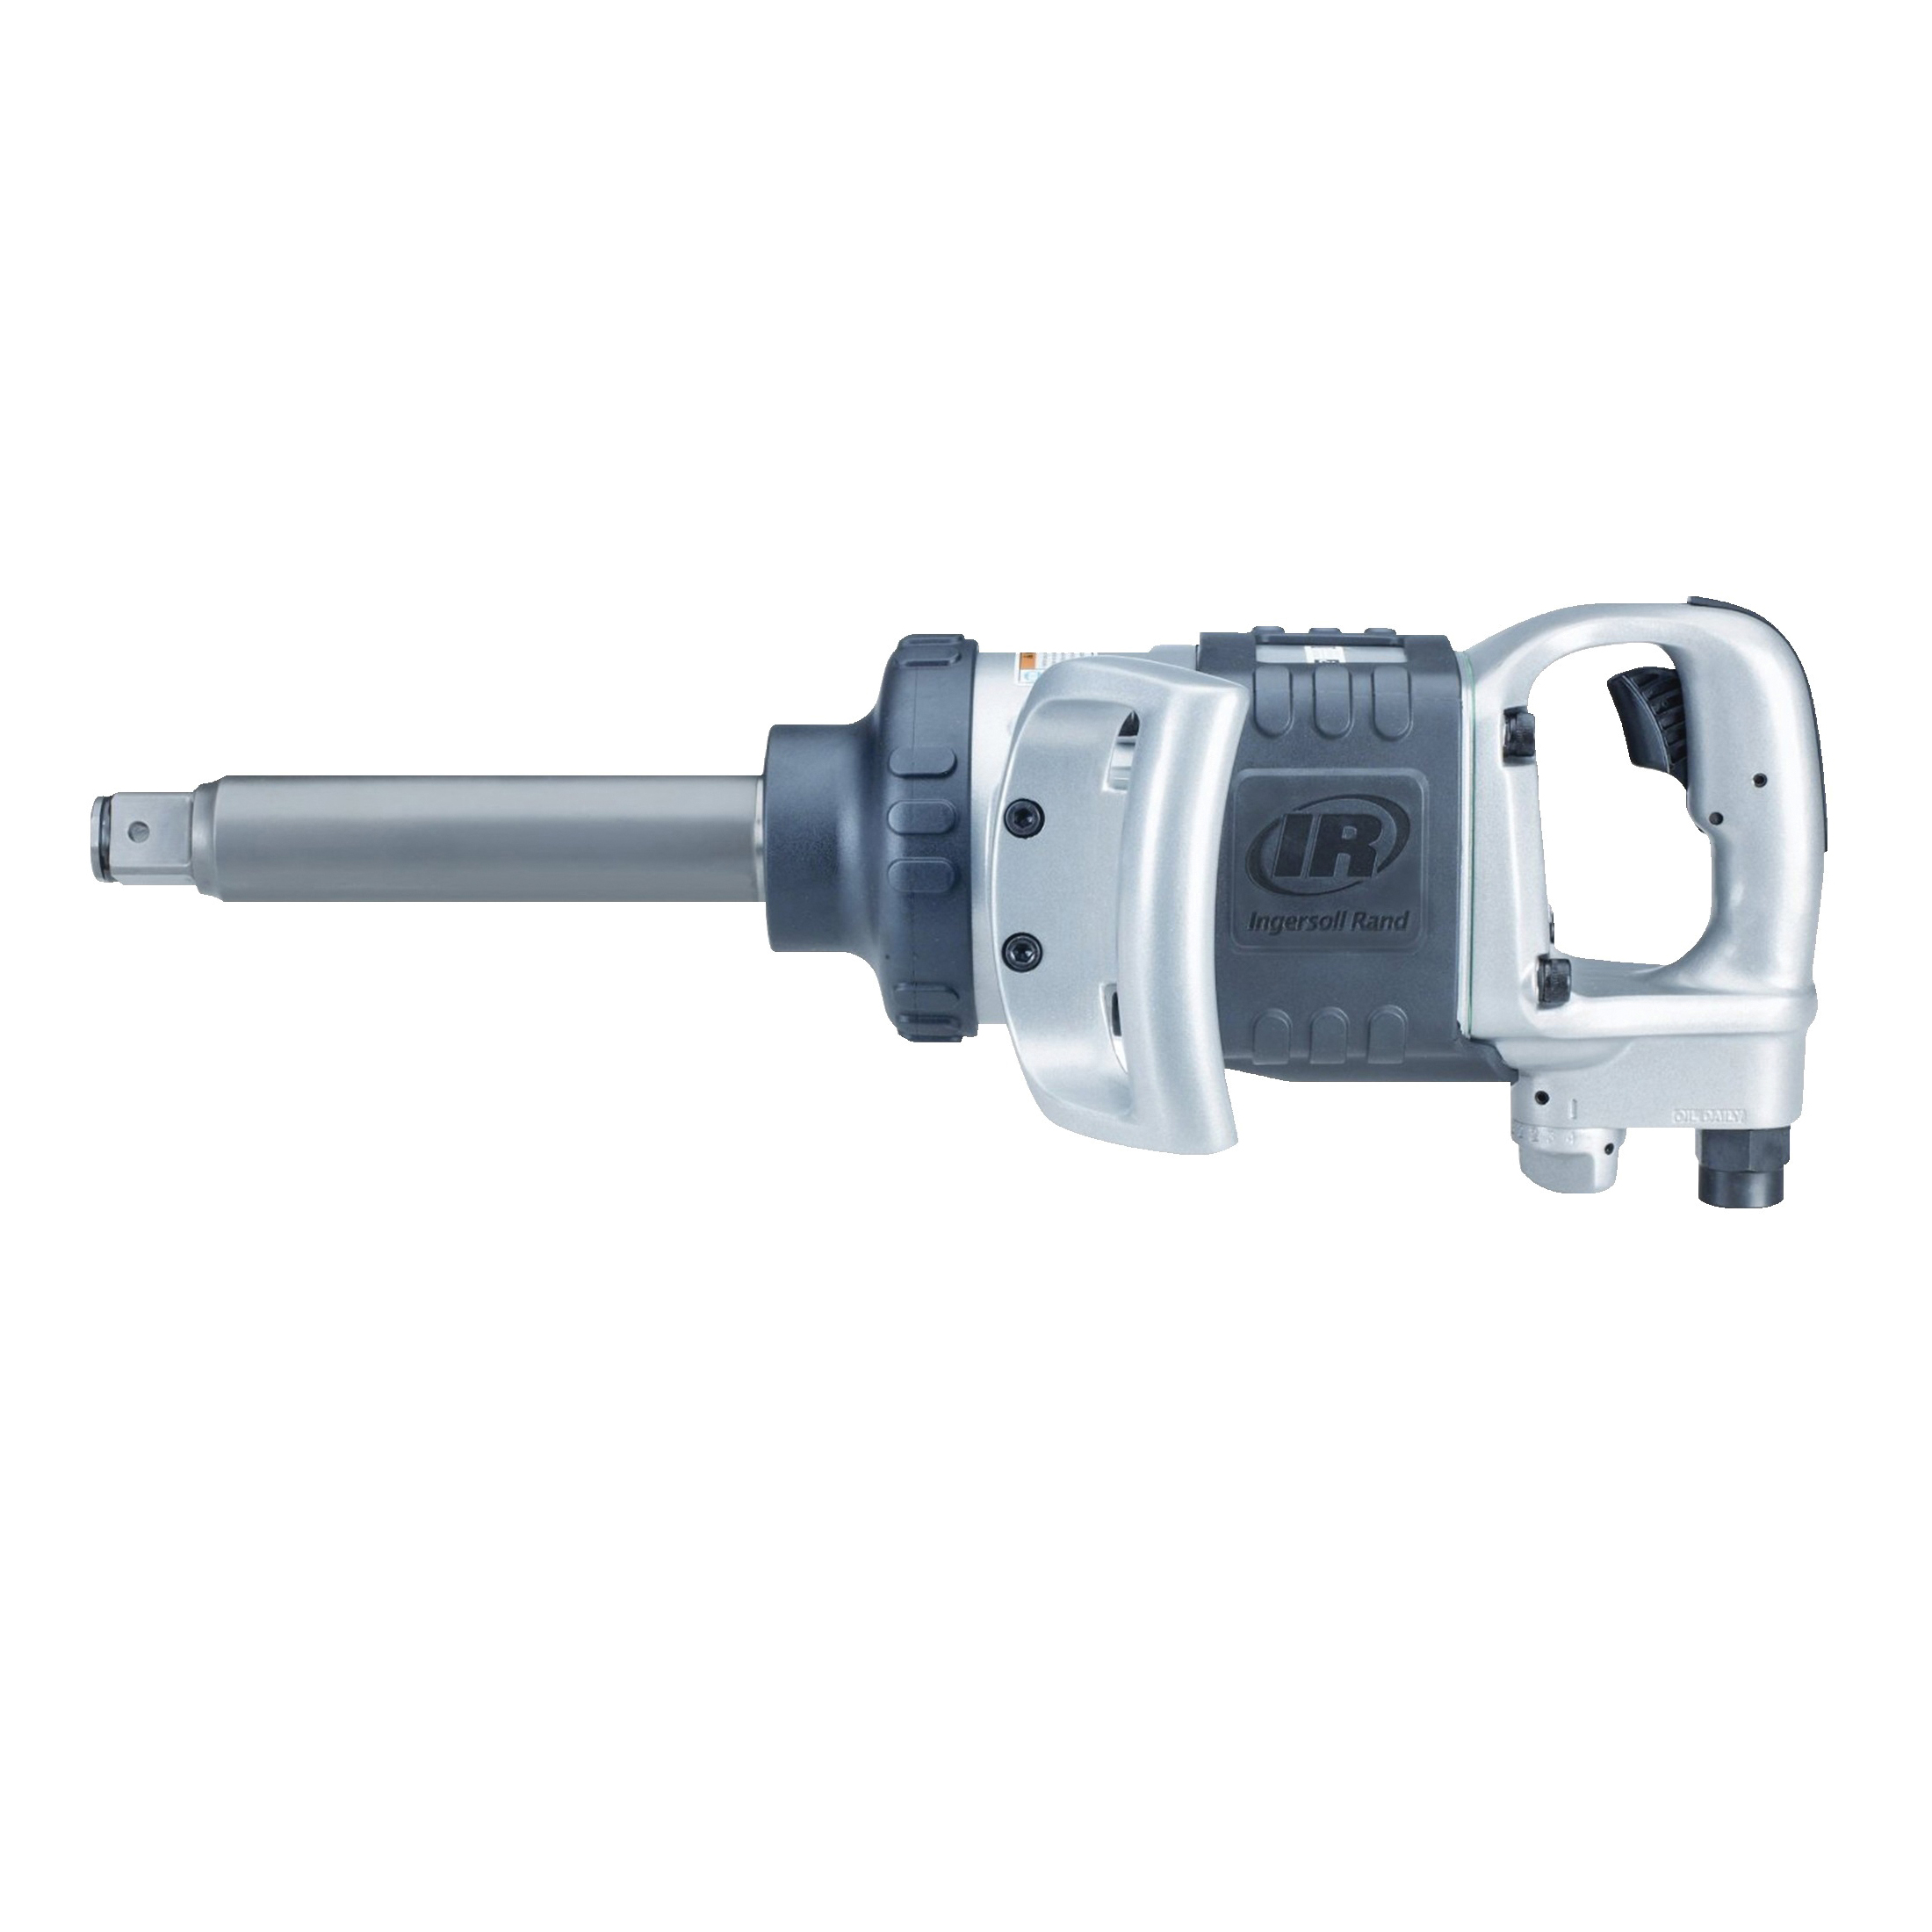 Picture of Ingersoll Rand 285B-6 Air Impact Wrench, 1 in Drive, 1475 ft-lb, 5250 rpm Speed